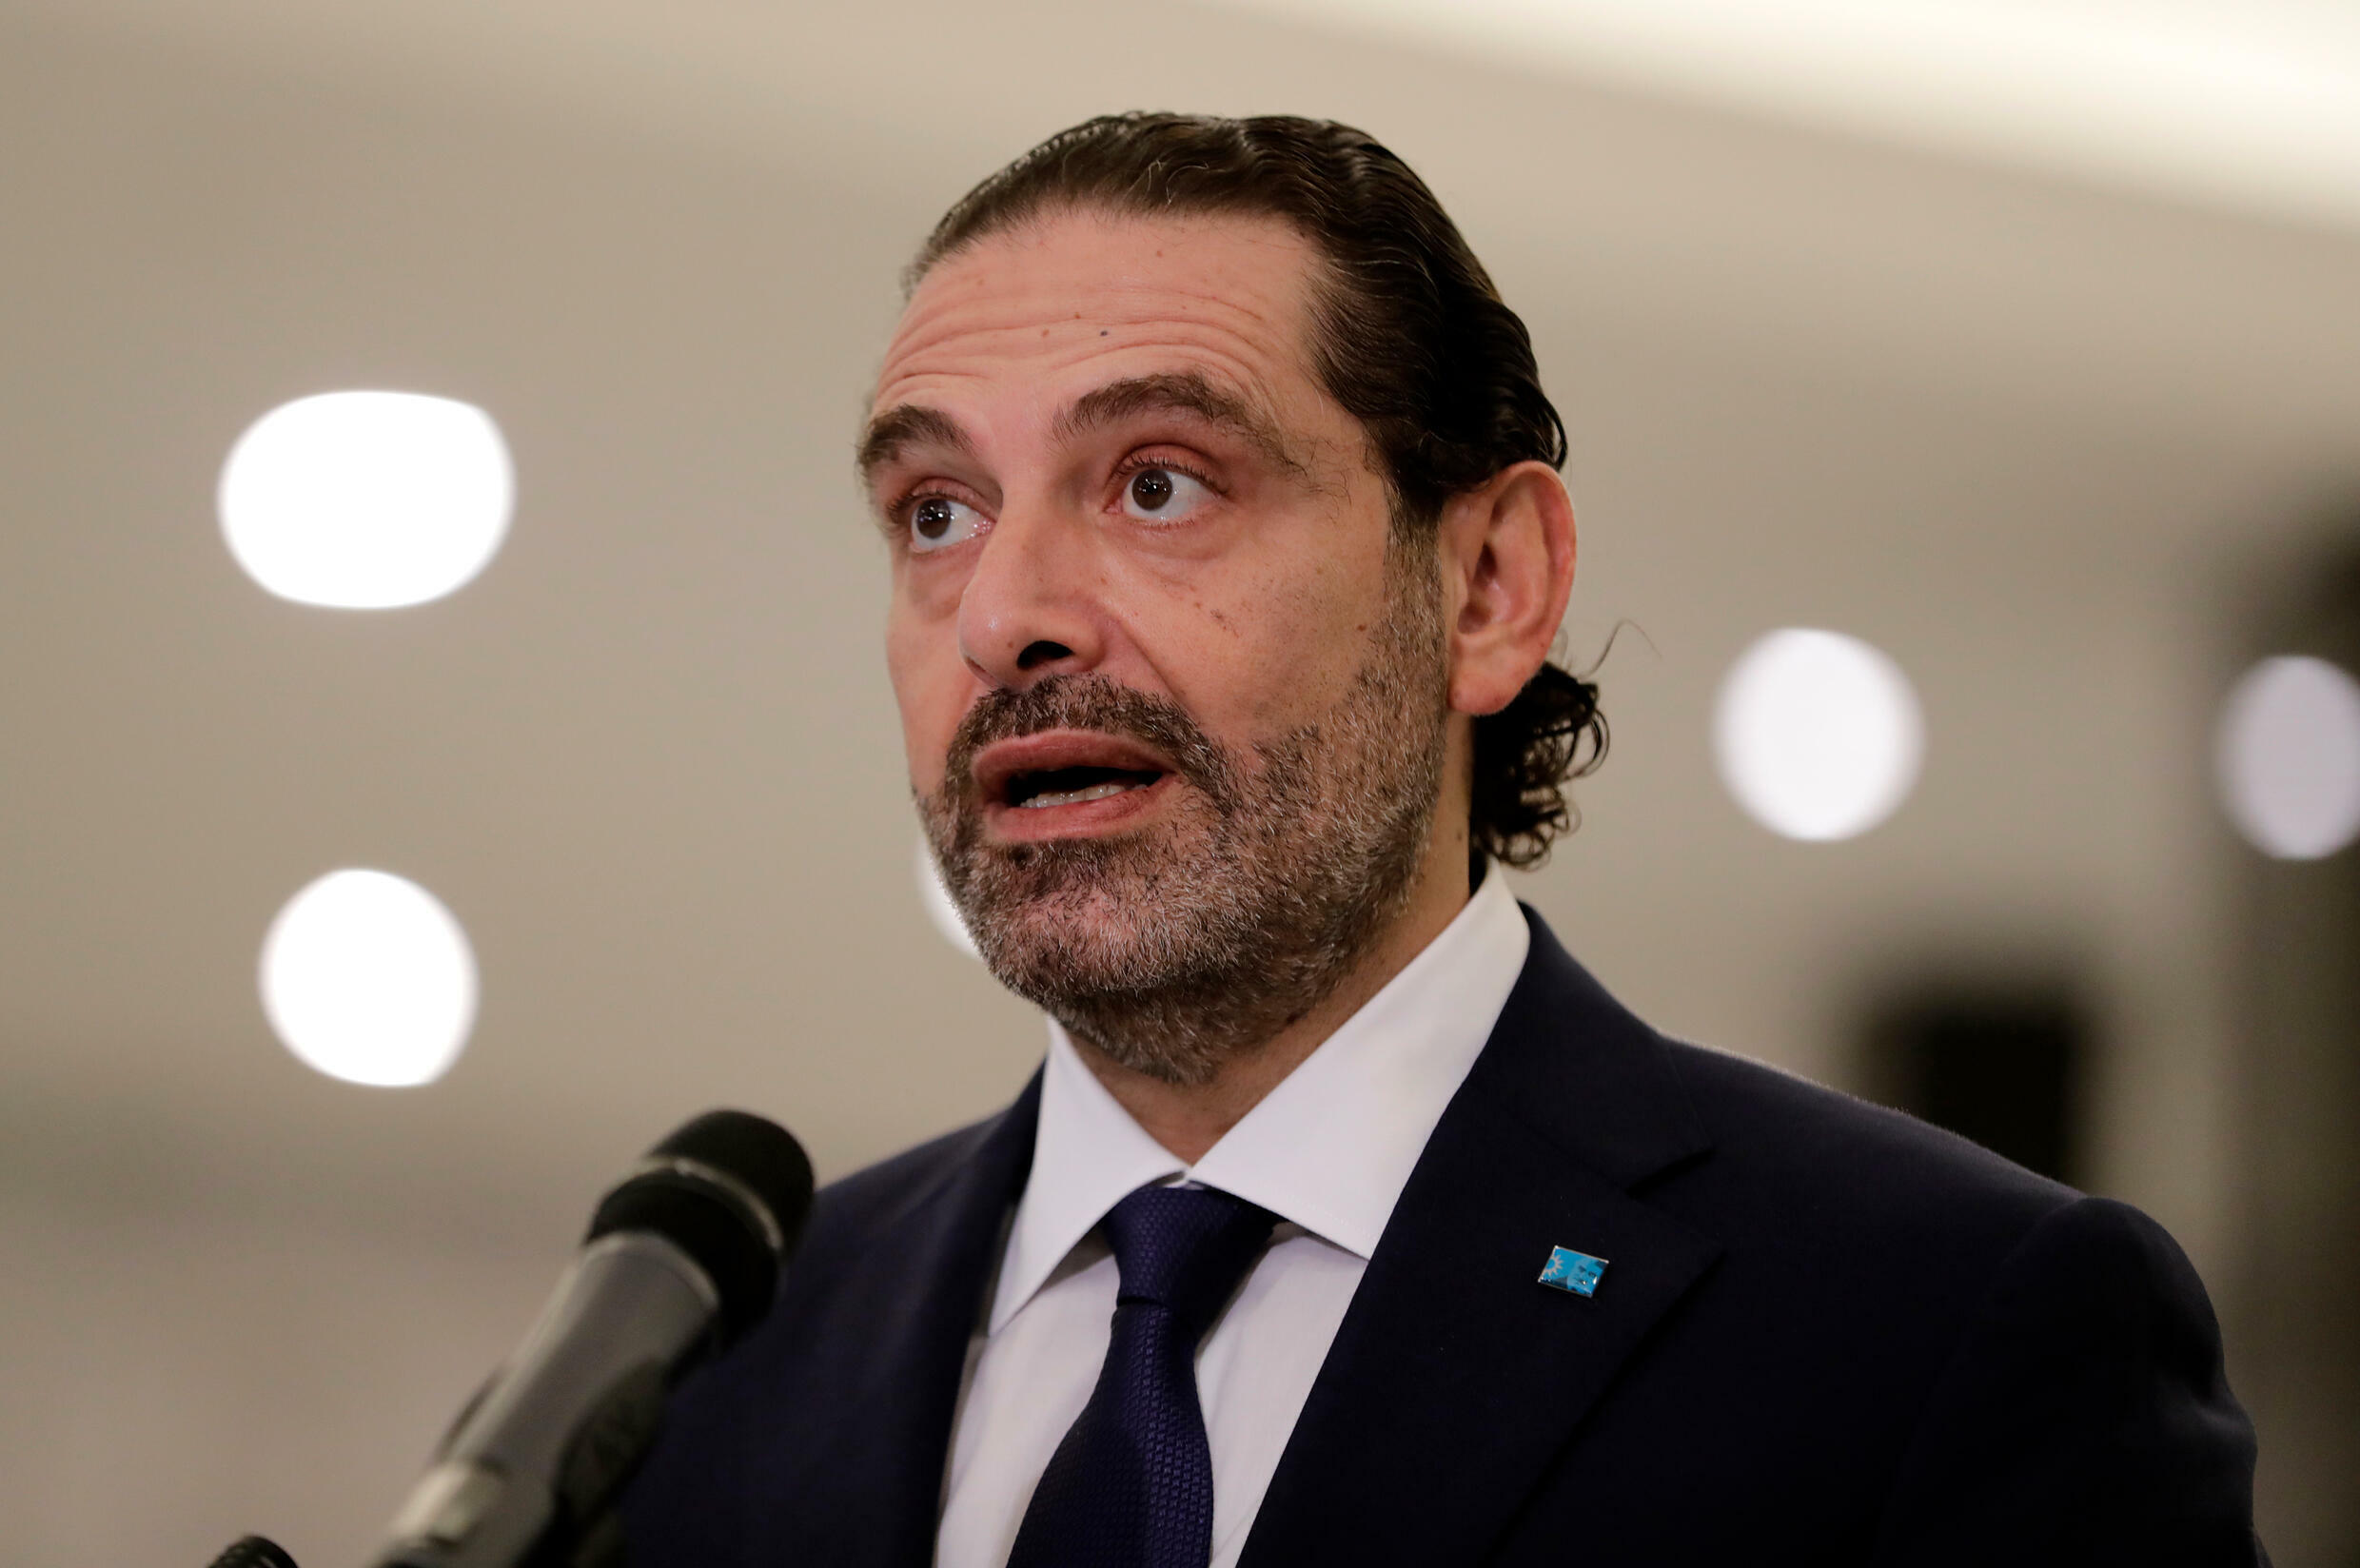 Lebanon's prime minister-designate Saad Hariri, pictured here in  October 22, 2020, stepped down Thursday, saying he was unable to form a government